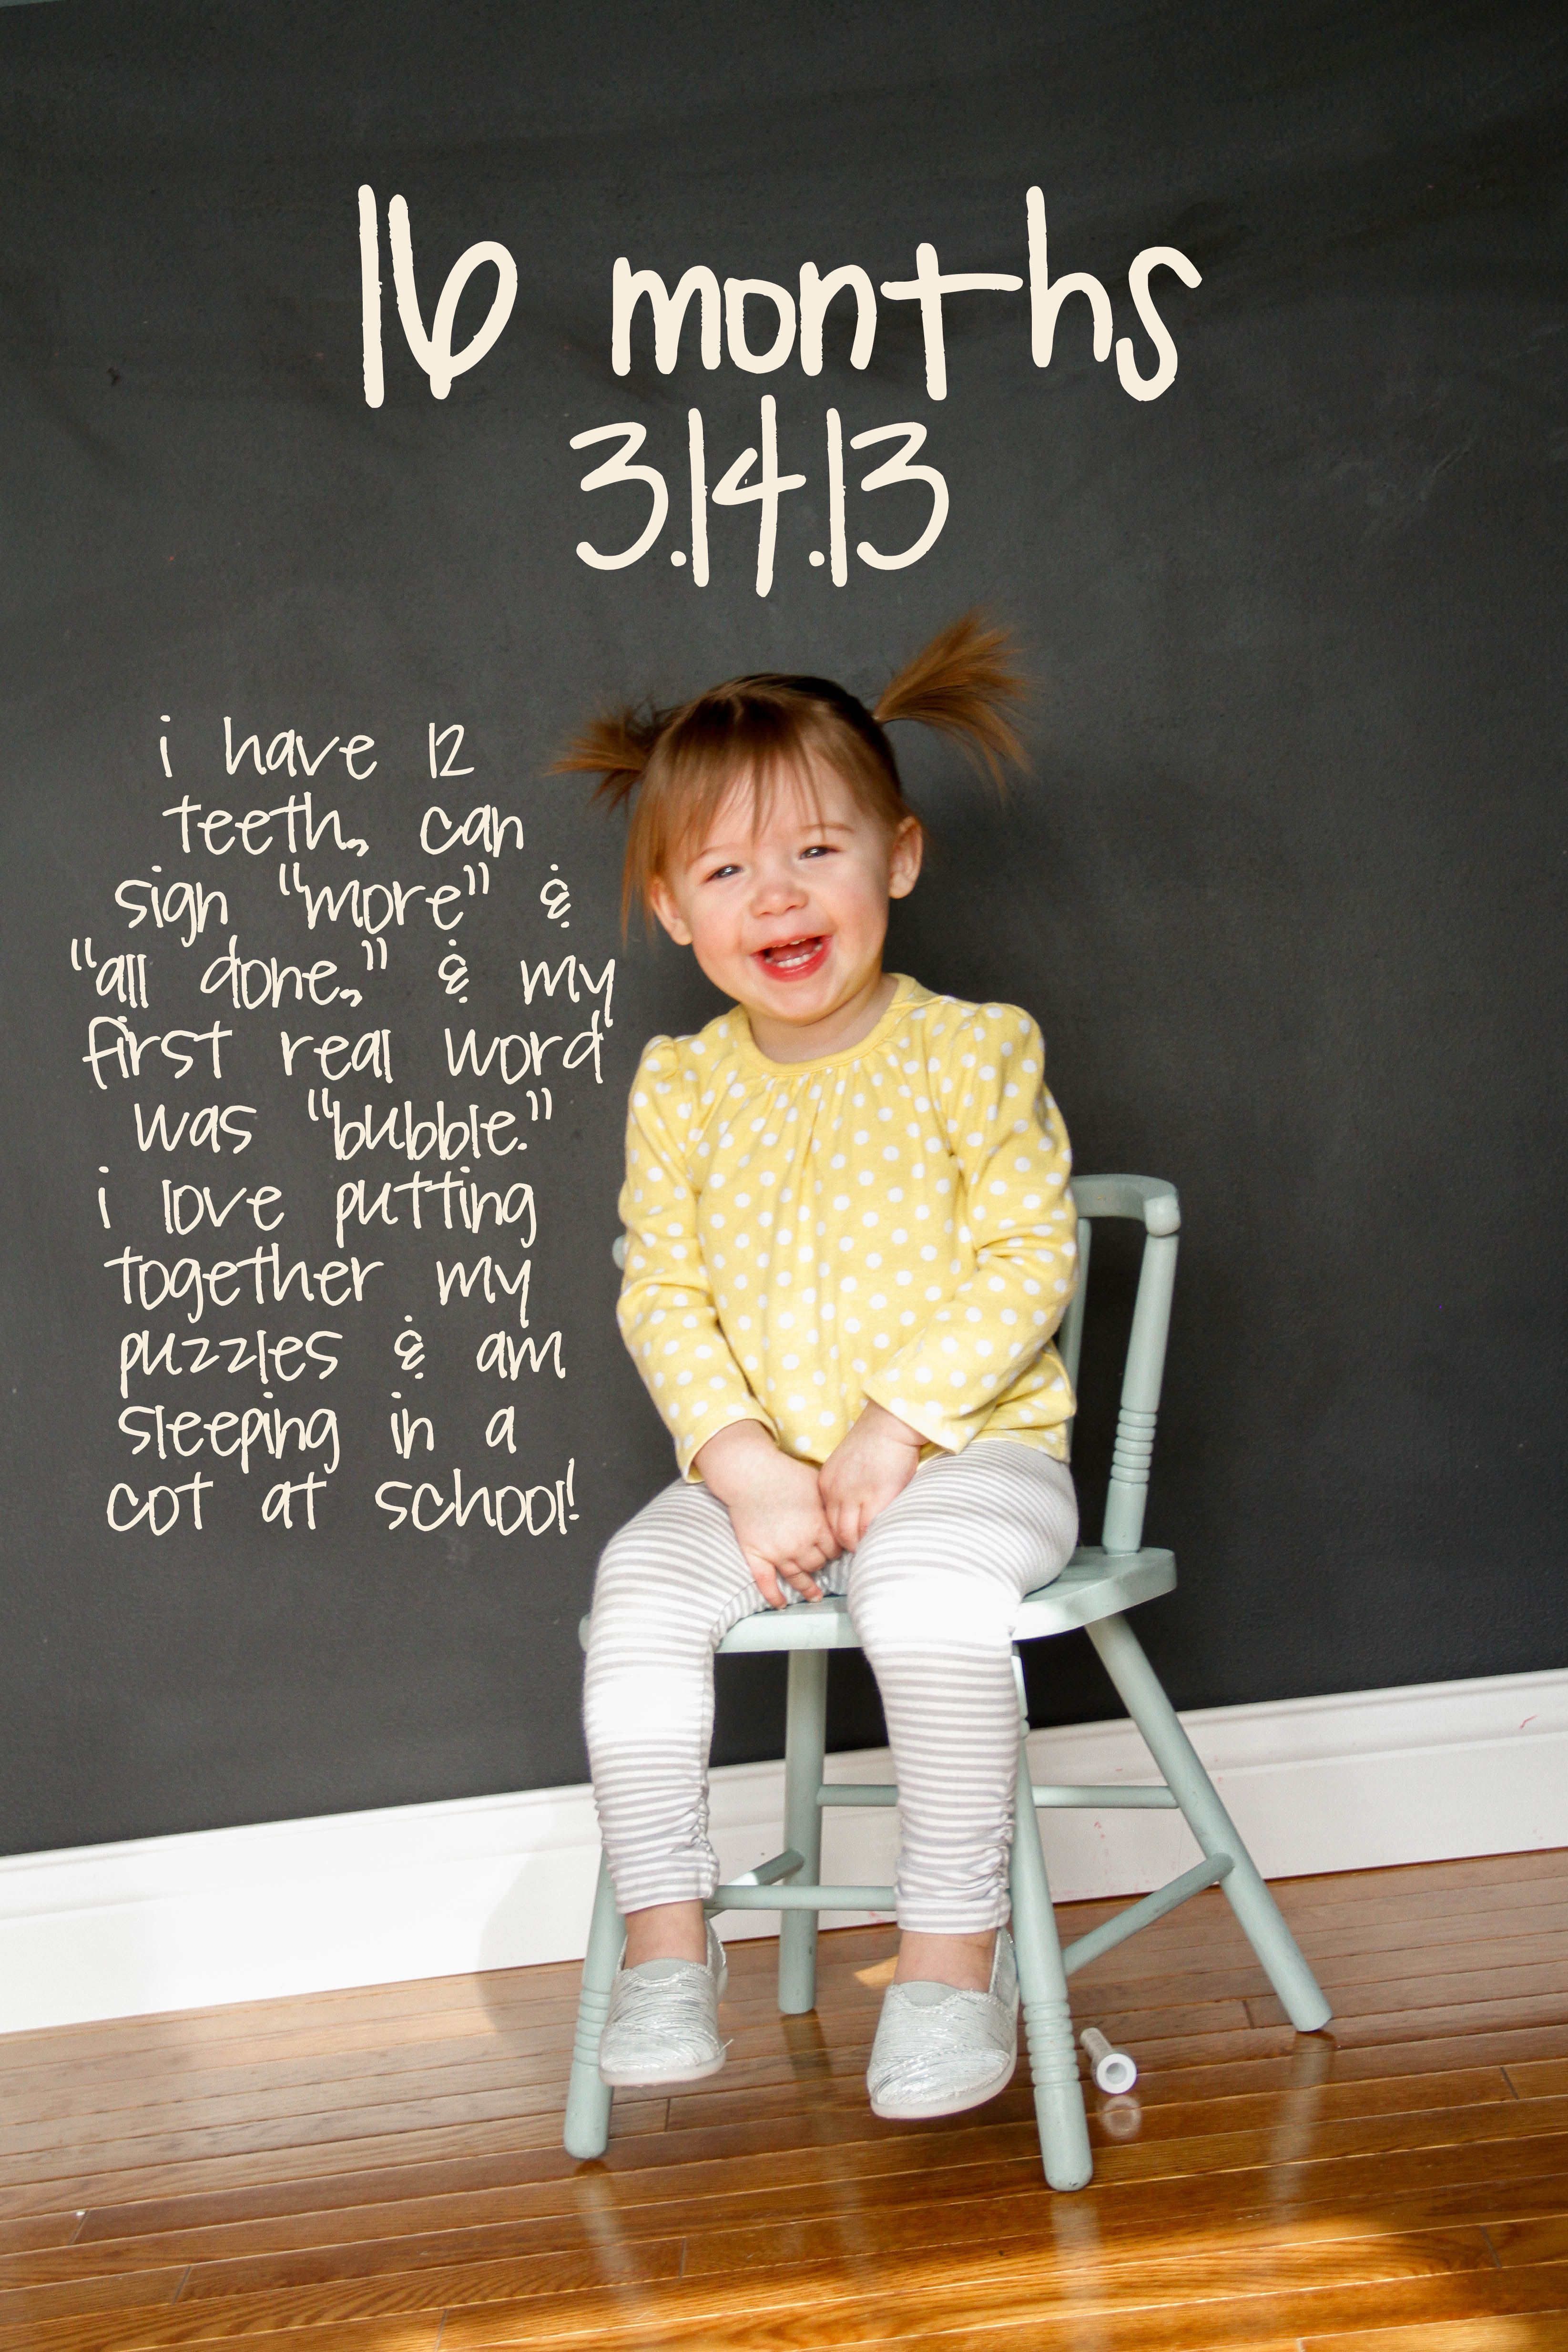 This Parent Has A Neat Idea Mila S Monthly Pics Using The Chalkboard Wall Kids Photos Chalkboard Wall Pics